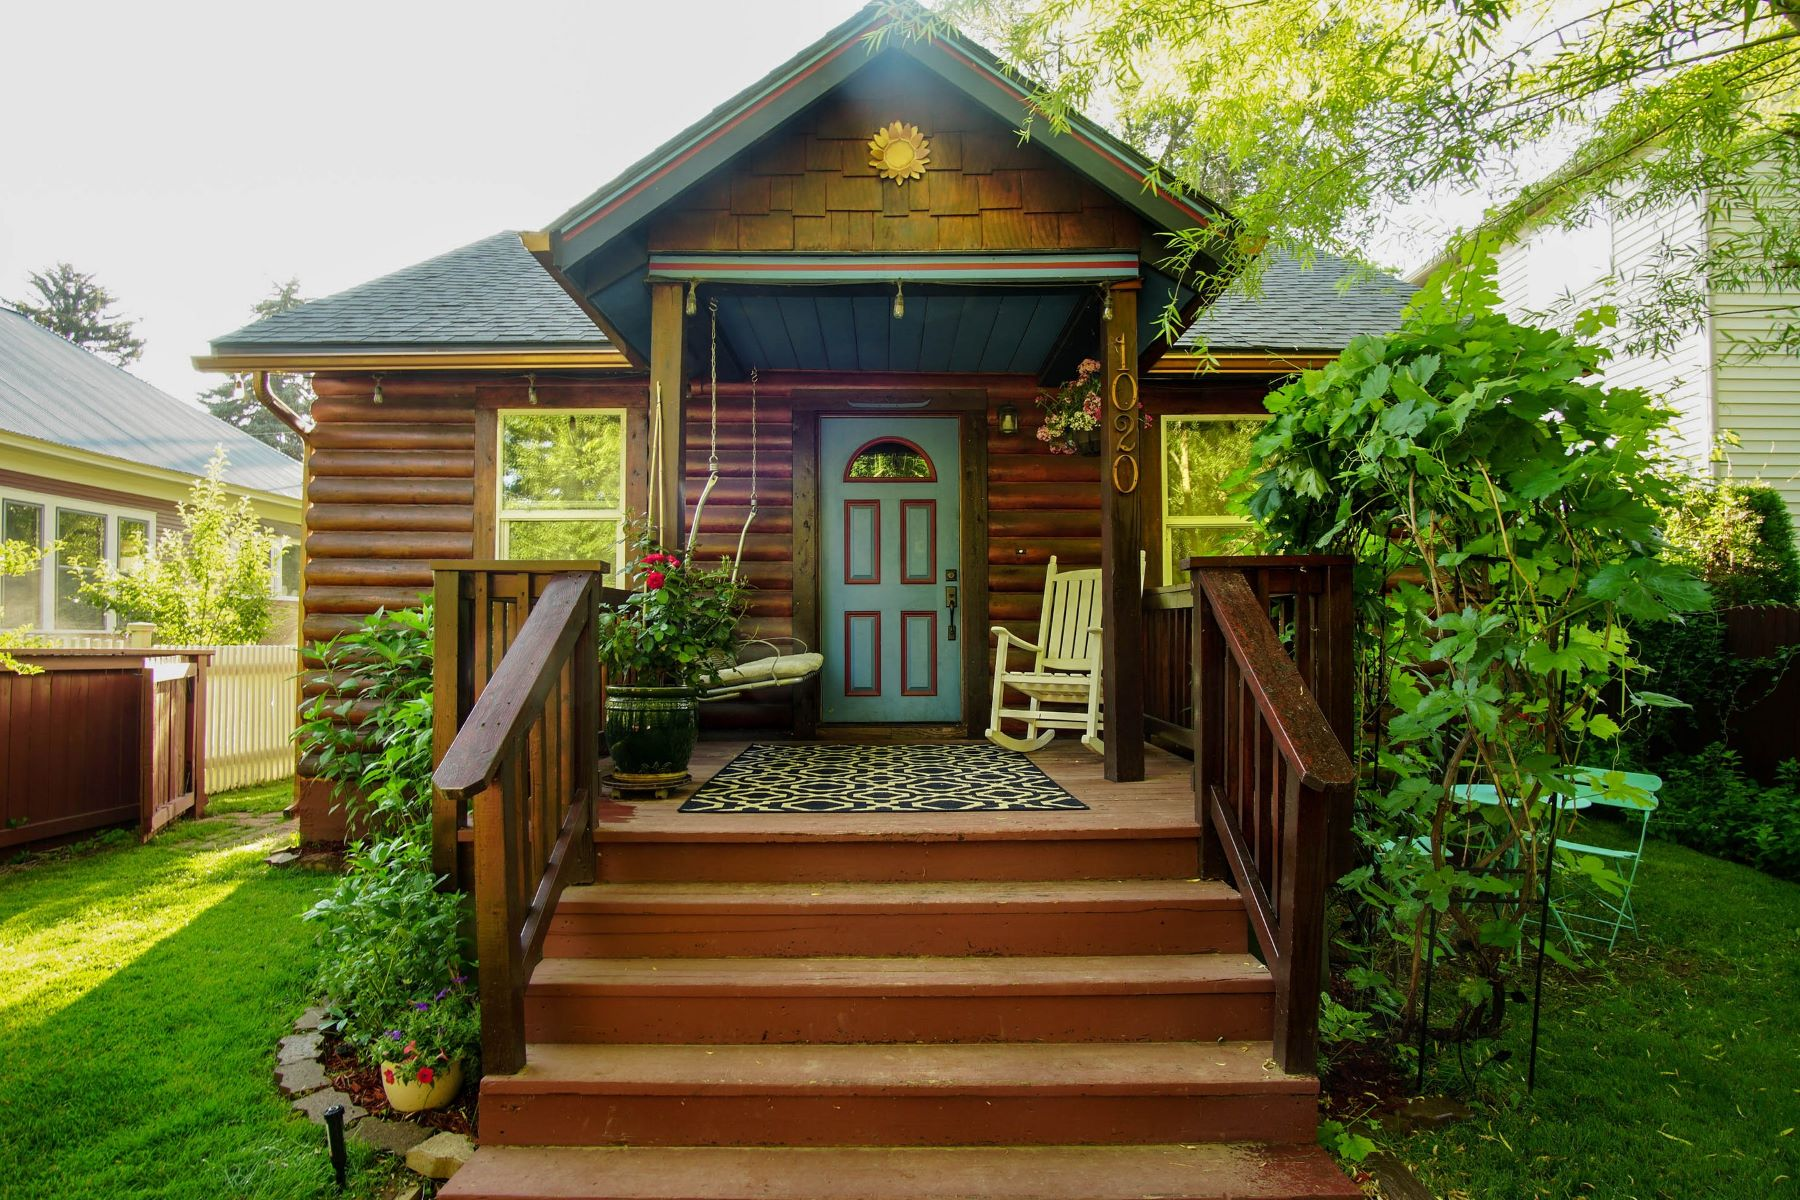 Single Family Home for Sale at Walk-to-Everything Remodeled Log Bungalow 1020 Pitkin Avenue Glenwood Springs, Colorado, 81601 United States